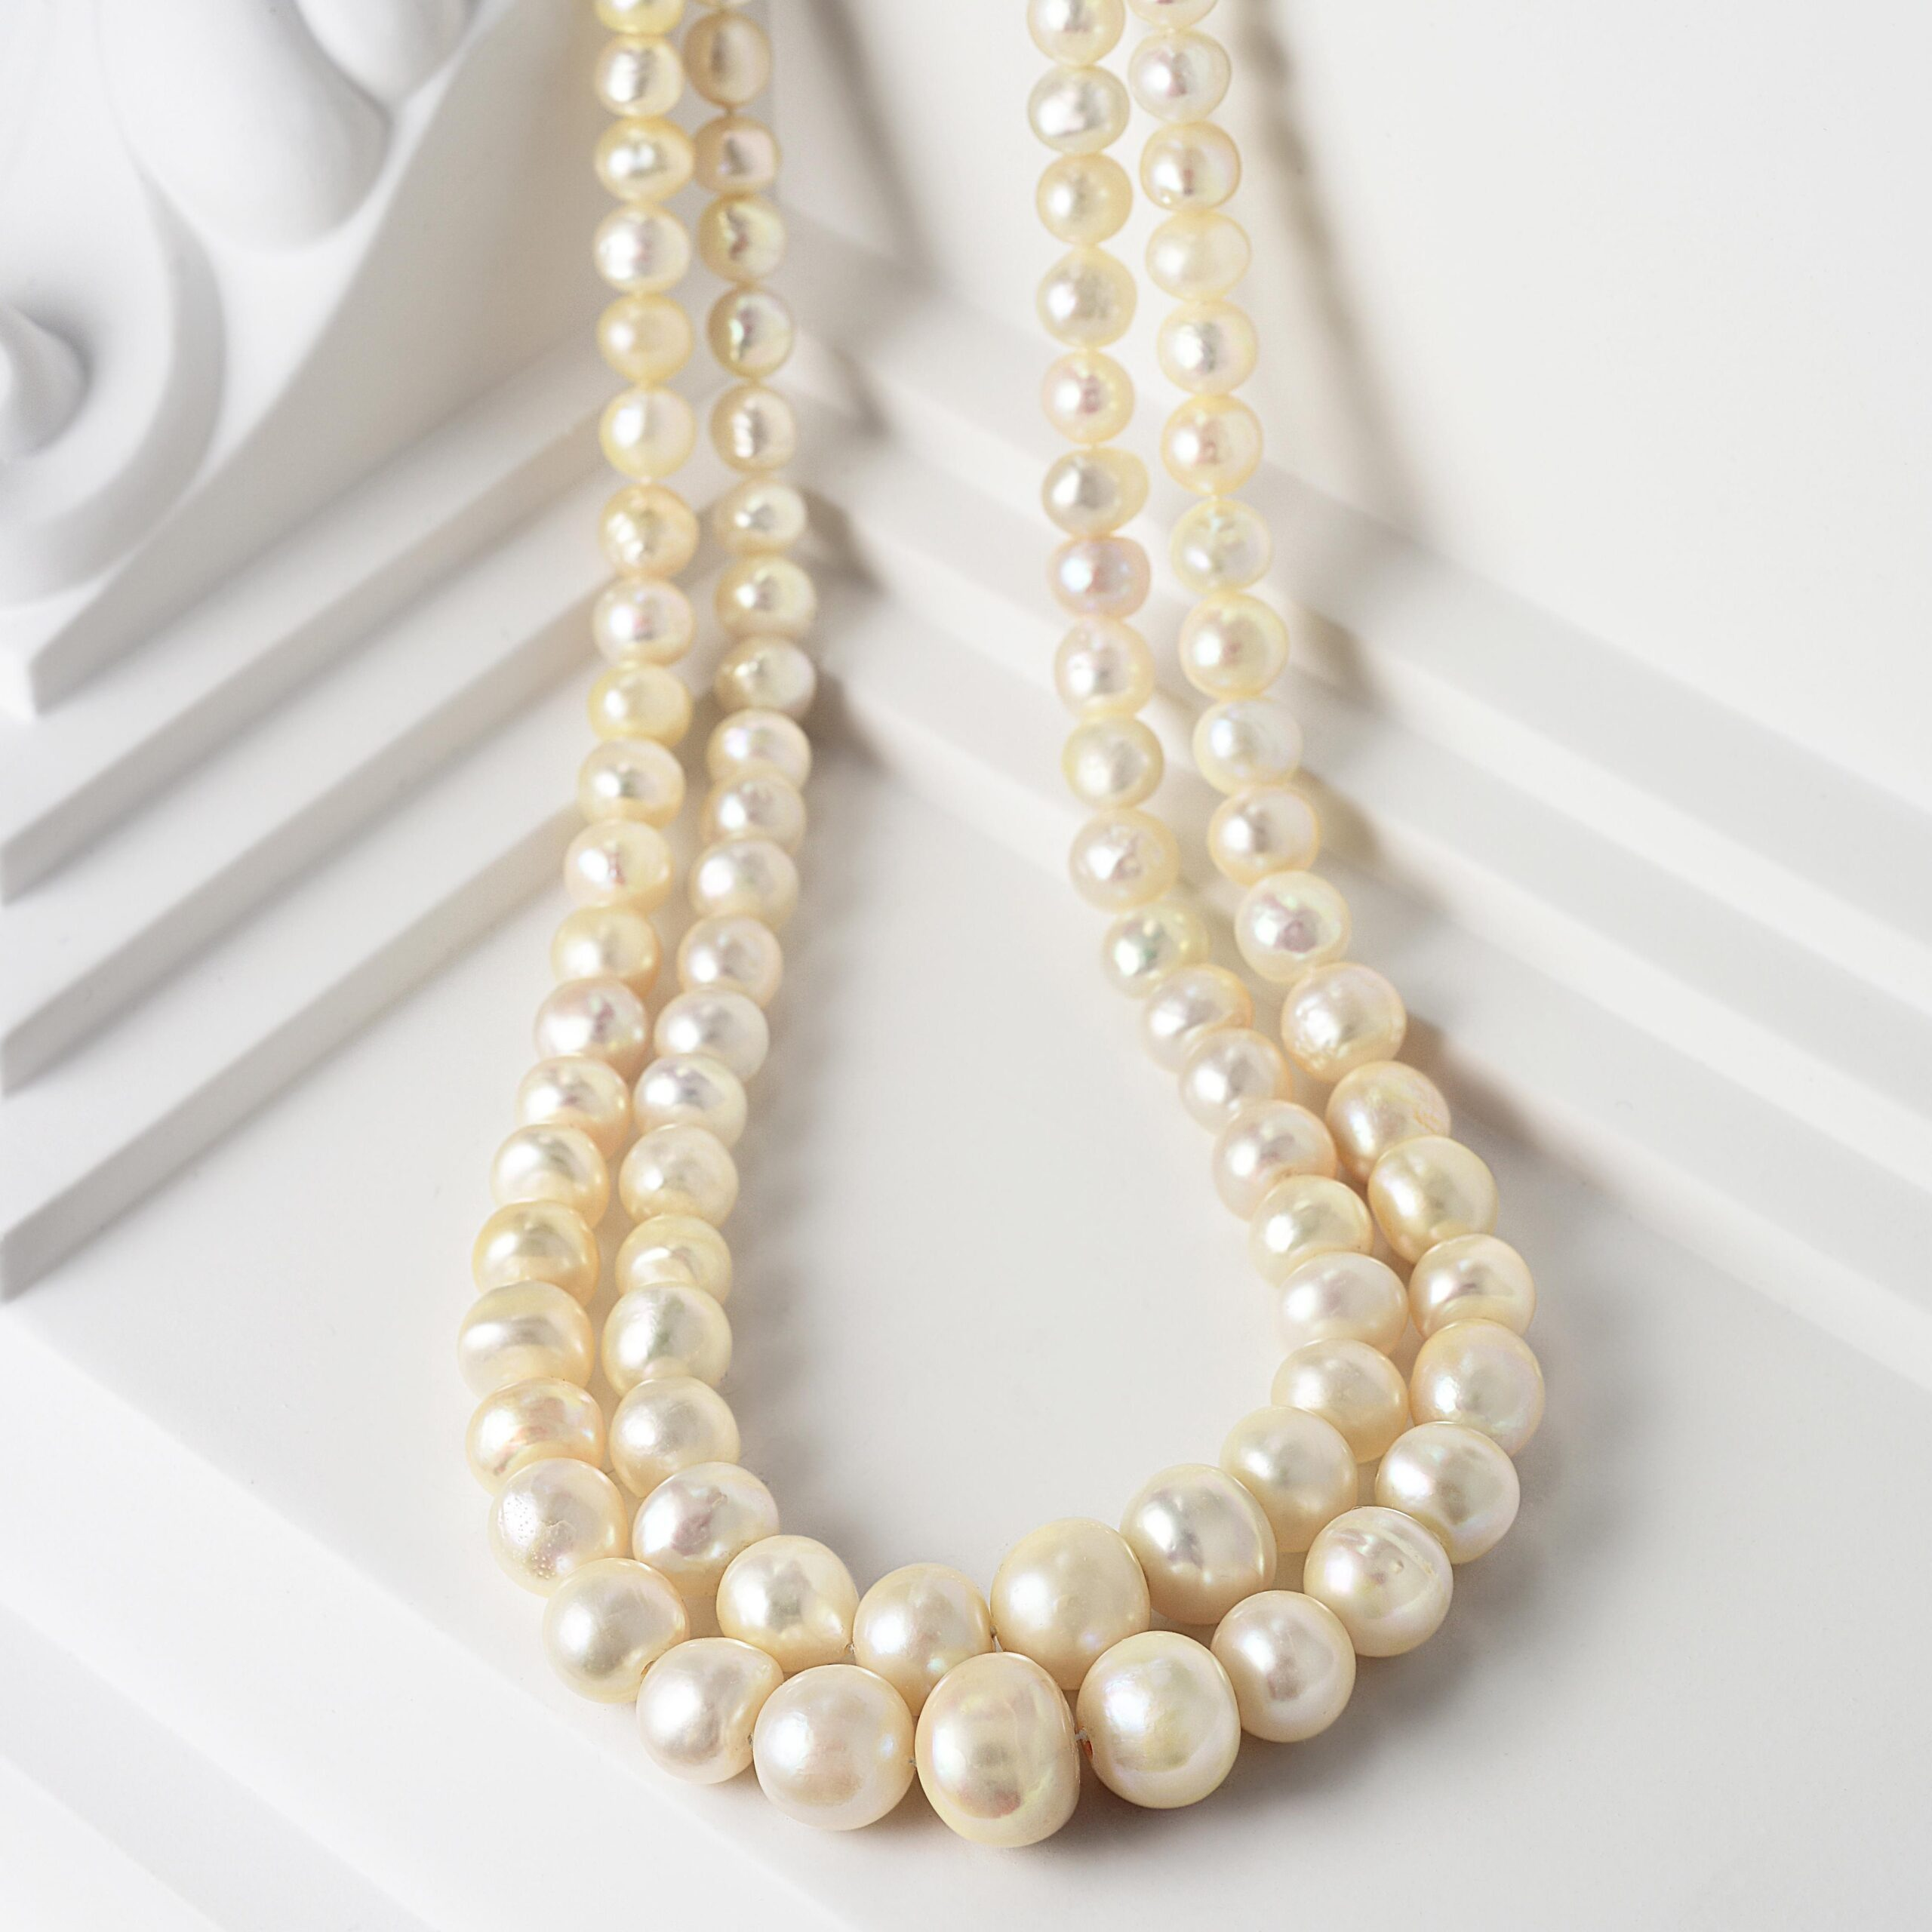 Double Strand of Natural Pearls